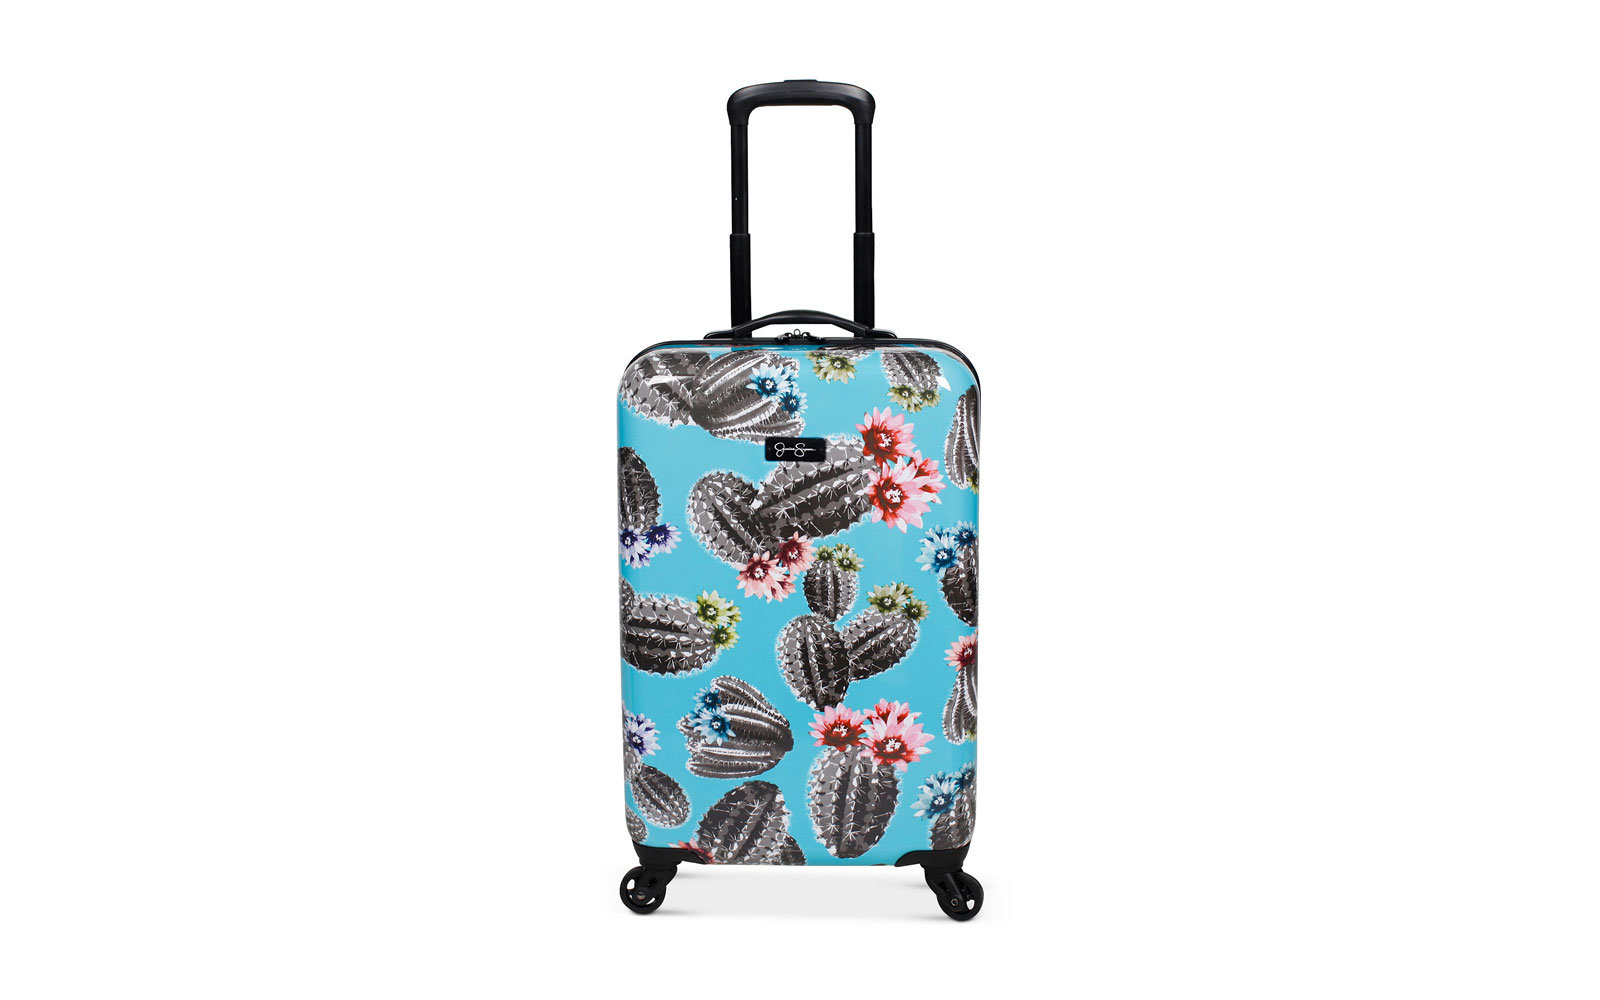 33517fe3af57 14 Cute Luggage Picks That Will Stand Out at Baggage Claim | Travel ...